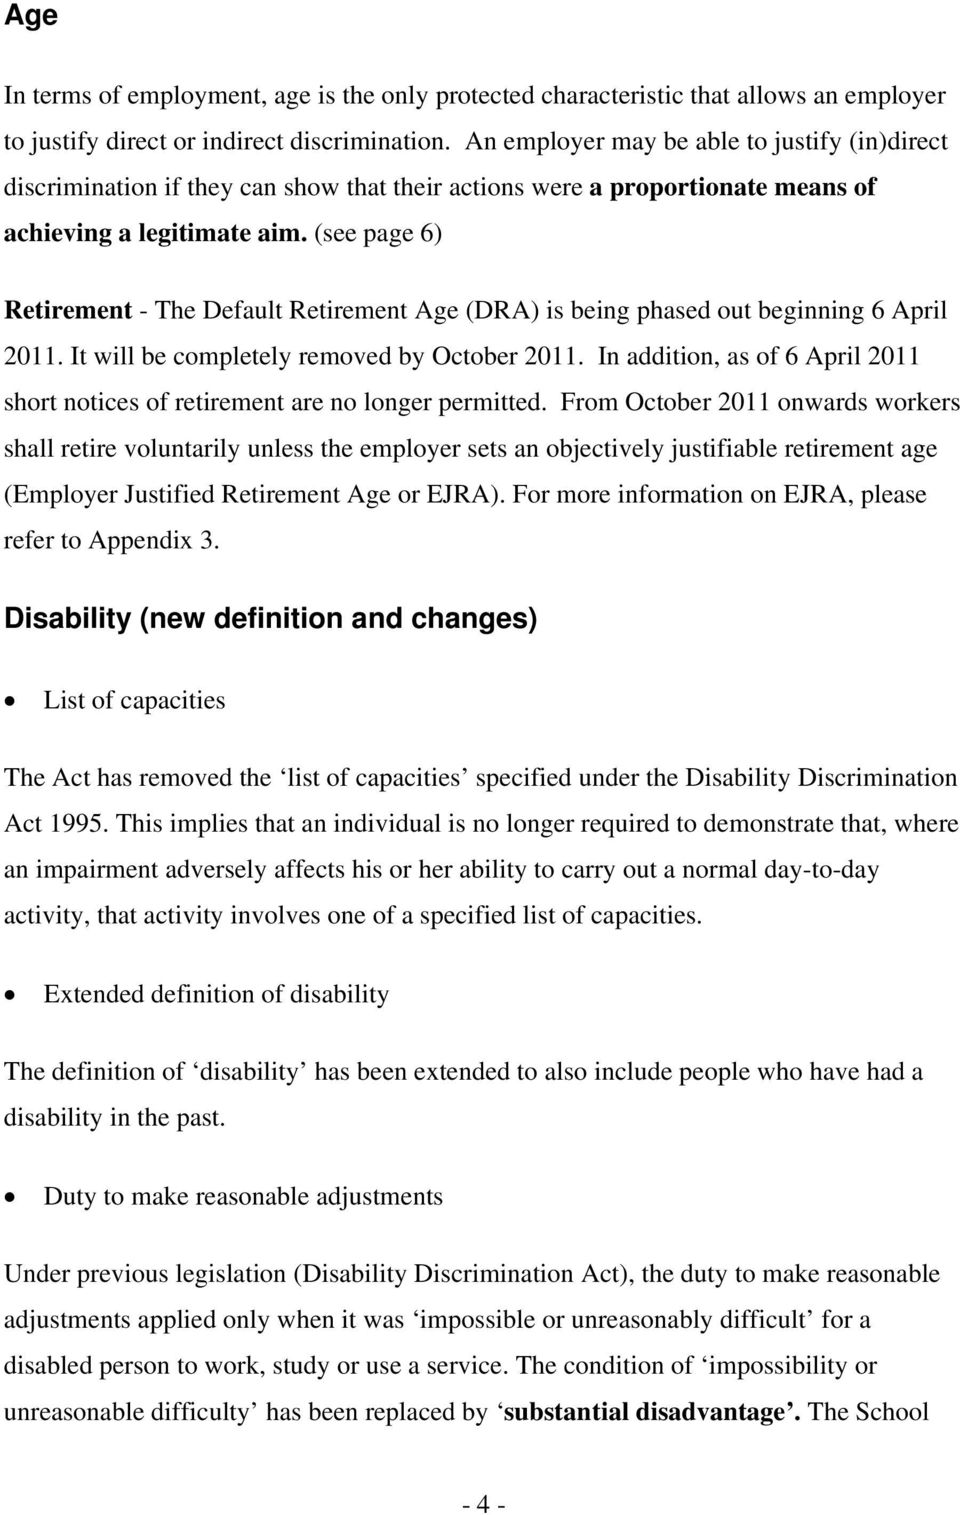 (see page 6) Retirement - The Default Retirement Age (DRA) is being phased out beginning 6 April 2011. It will be completely removed by October 2011.